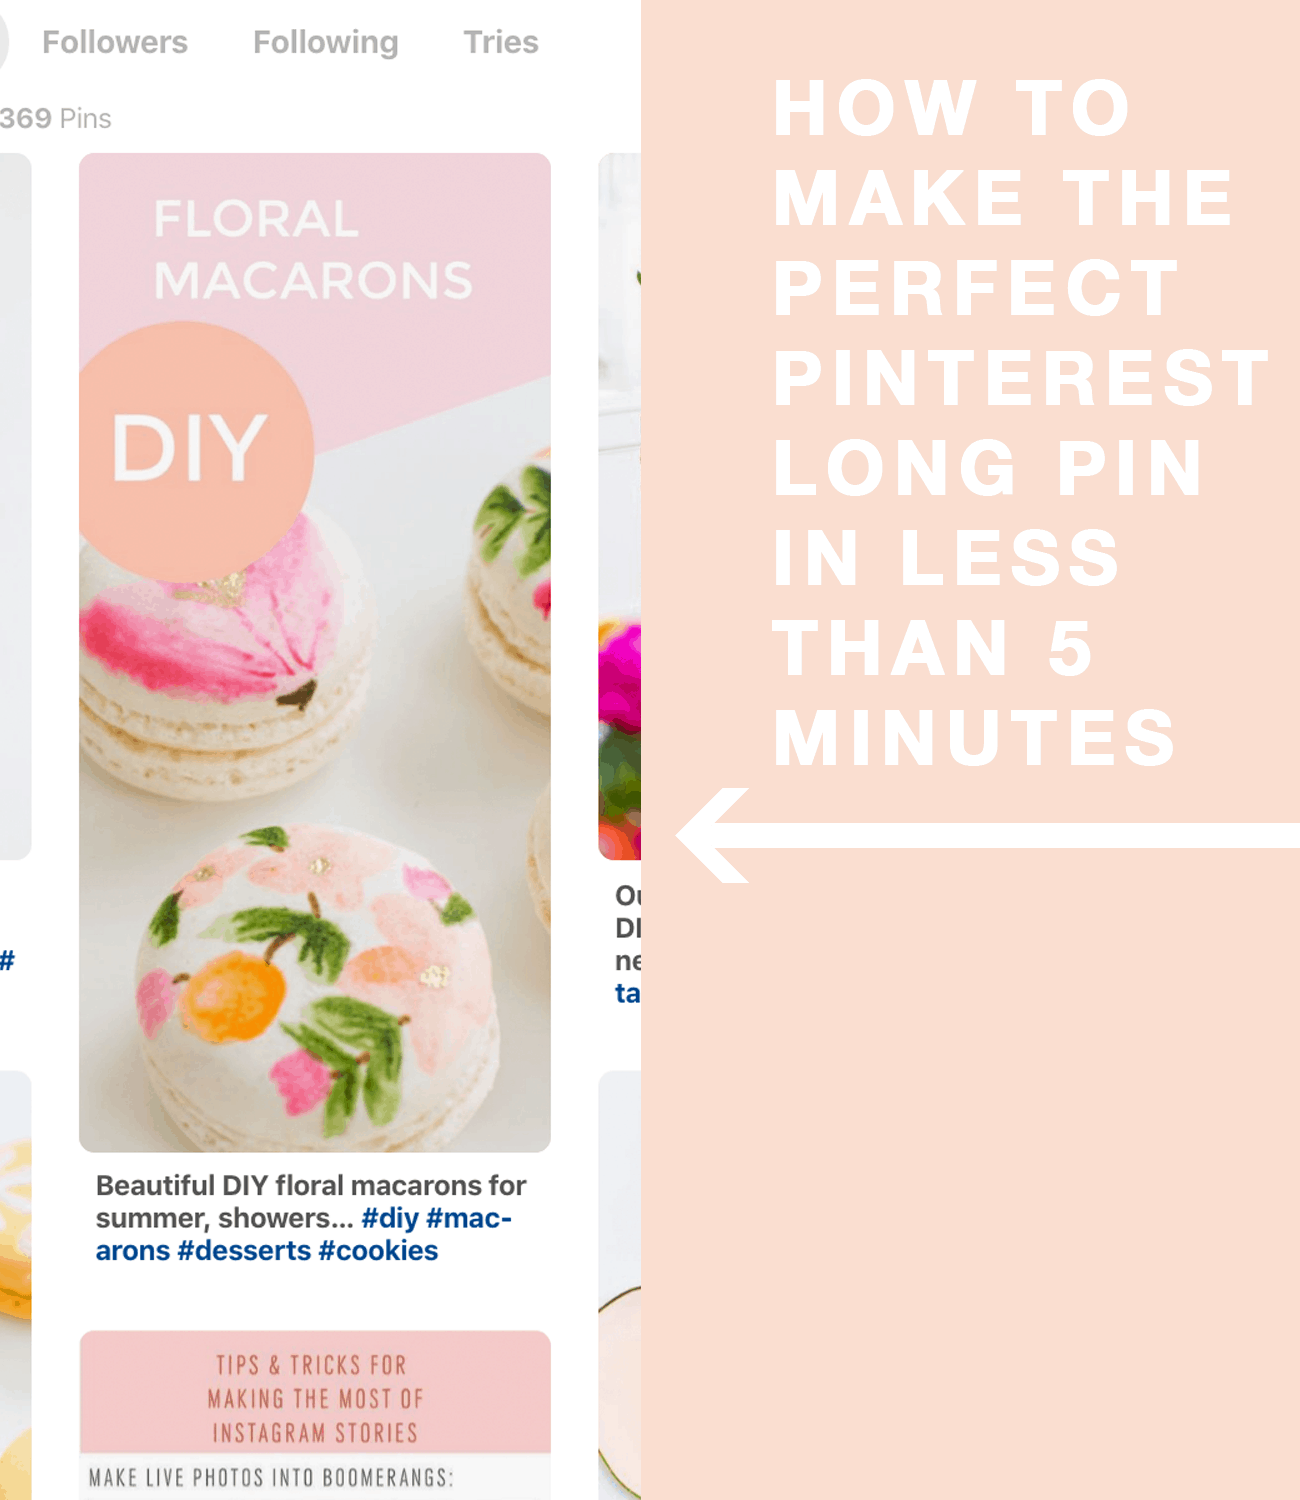 how to make the perfect pinterest long pin in less than 5 minutes by top Houston lifestyle blogger Ashley Rose of Sugar and Cloth